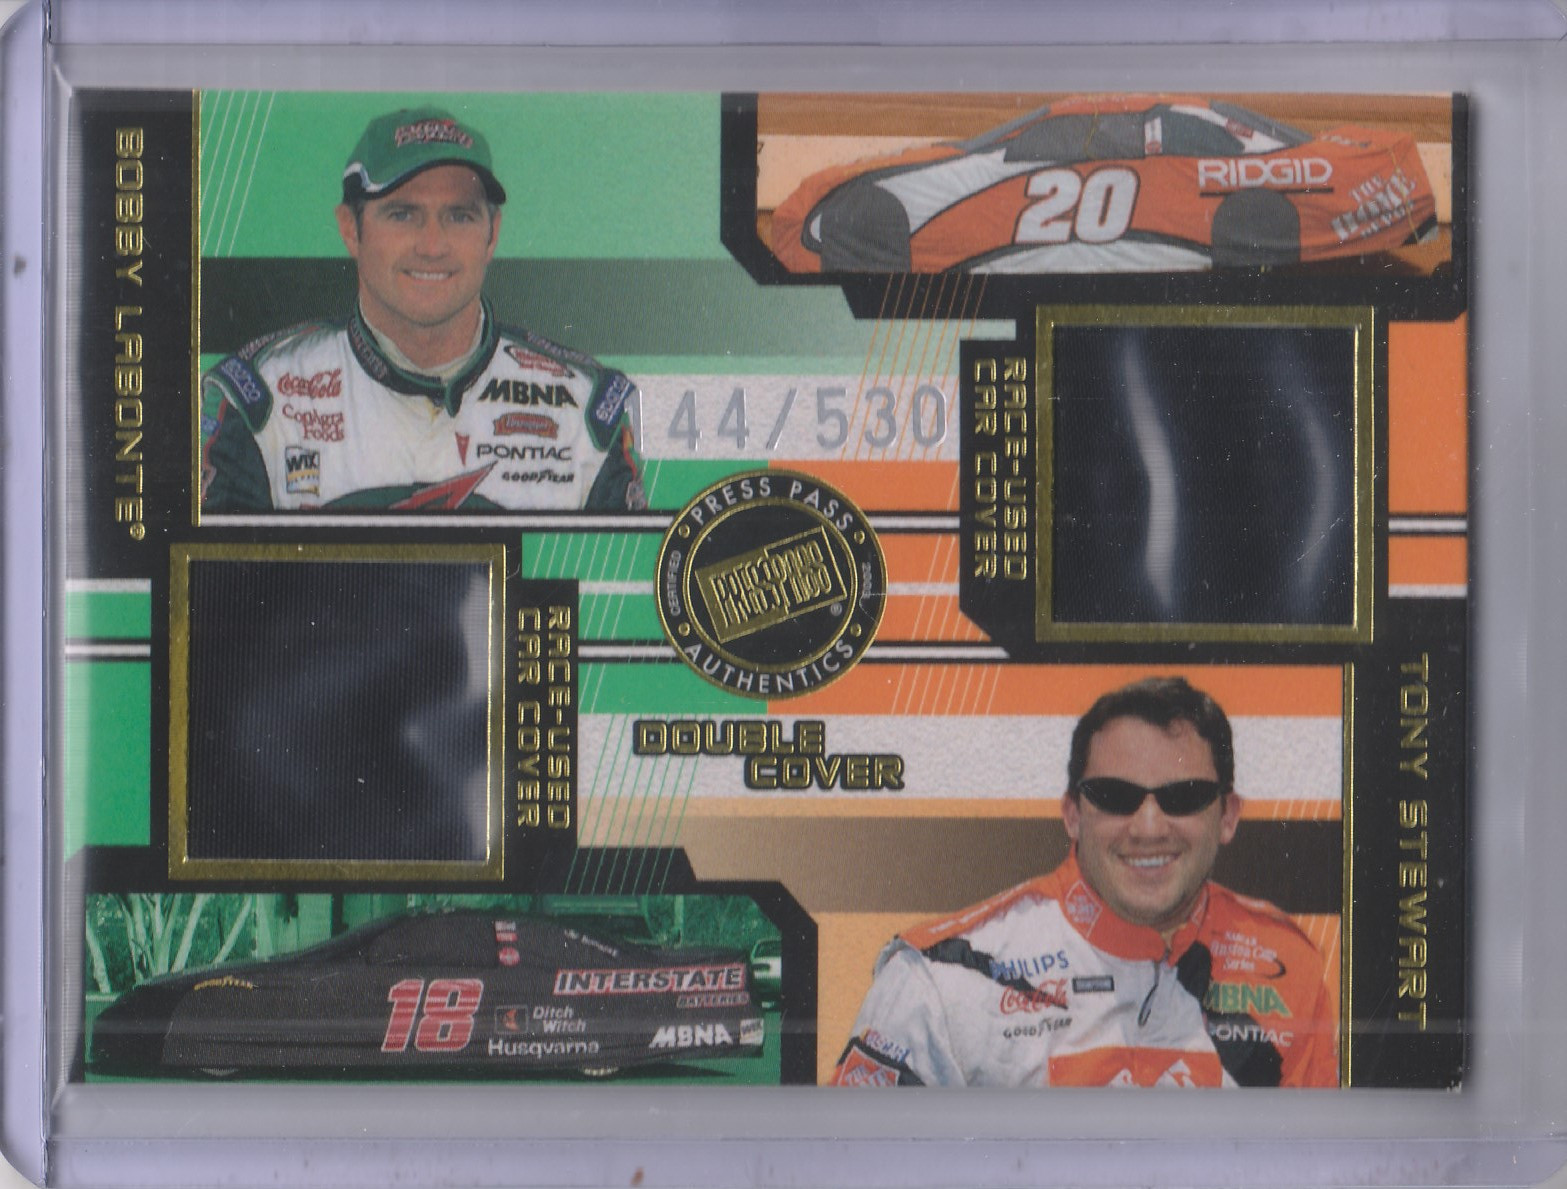 2003 Press Pass Eclipse Under Cover Double Cover #DC7 Bobby Labonte/Tony Stewart